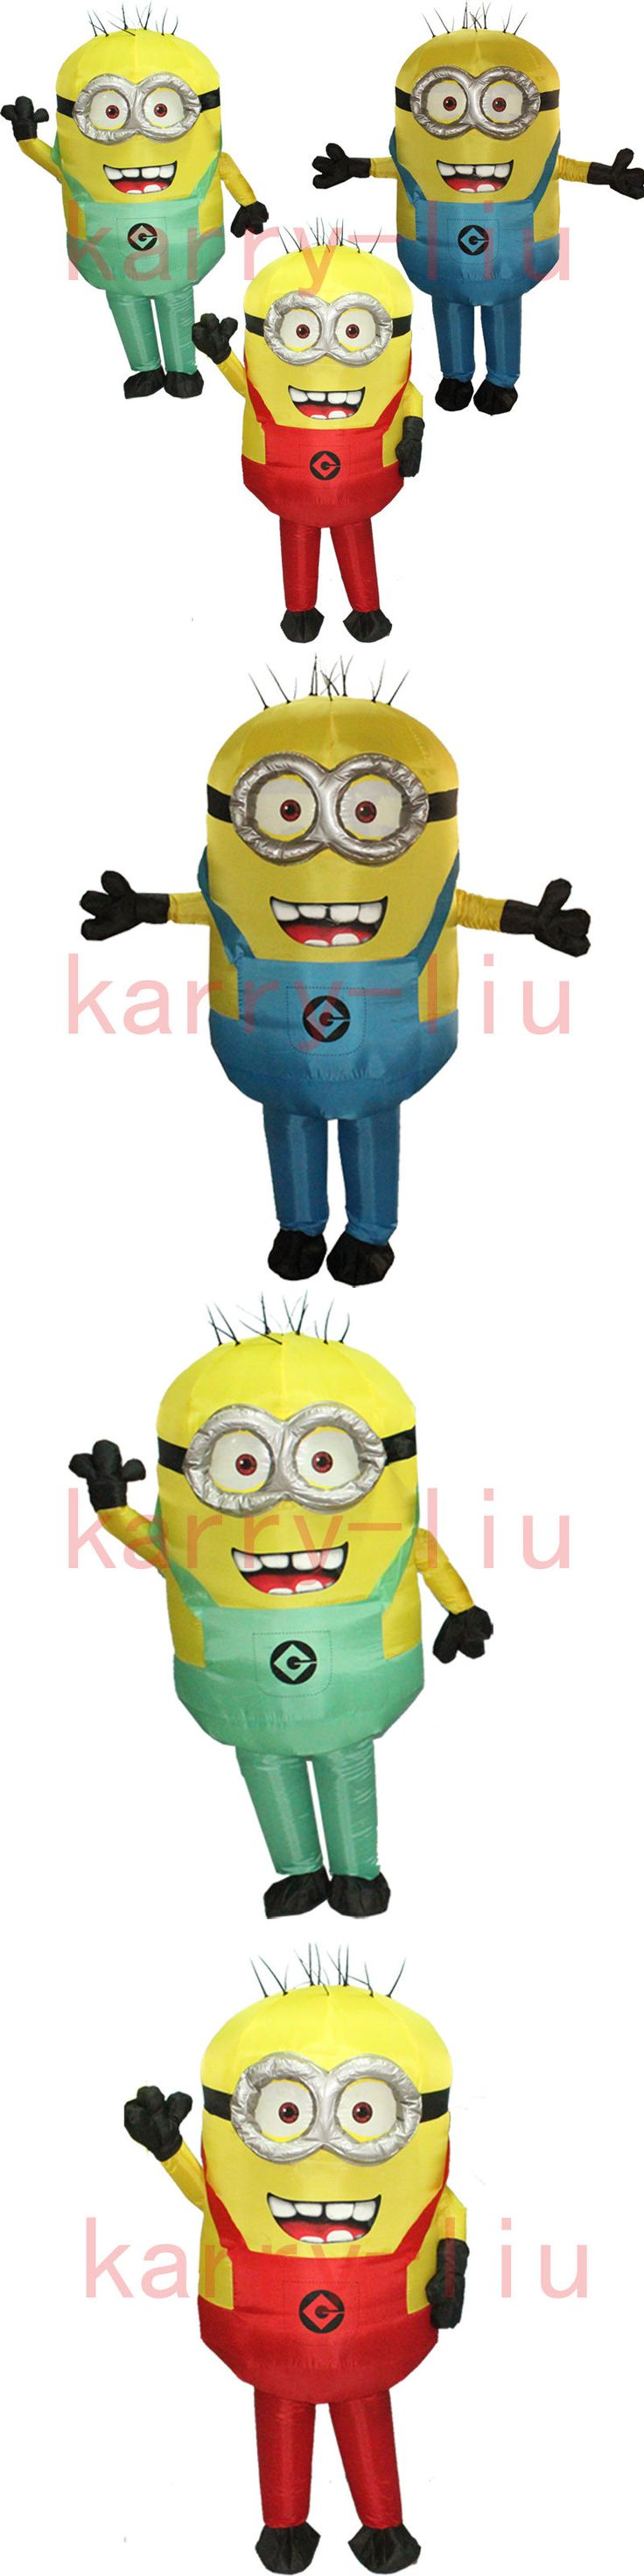 Inflatables 177759: Minions Inflatable Jumpsuit Blow Up Body Halloween Cosplay Walking Costume Adult -> BUY IT NOW ONLY: $48.99 on eBay!